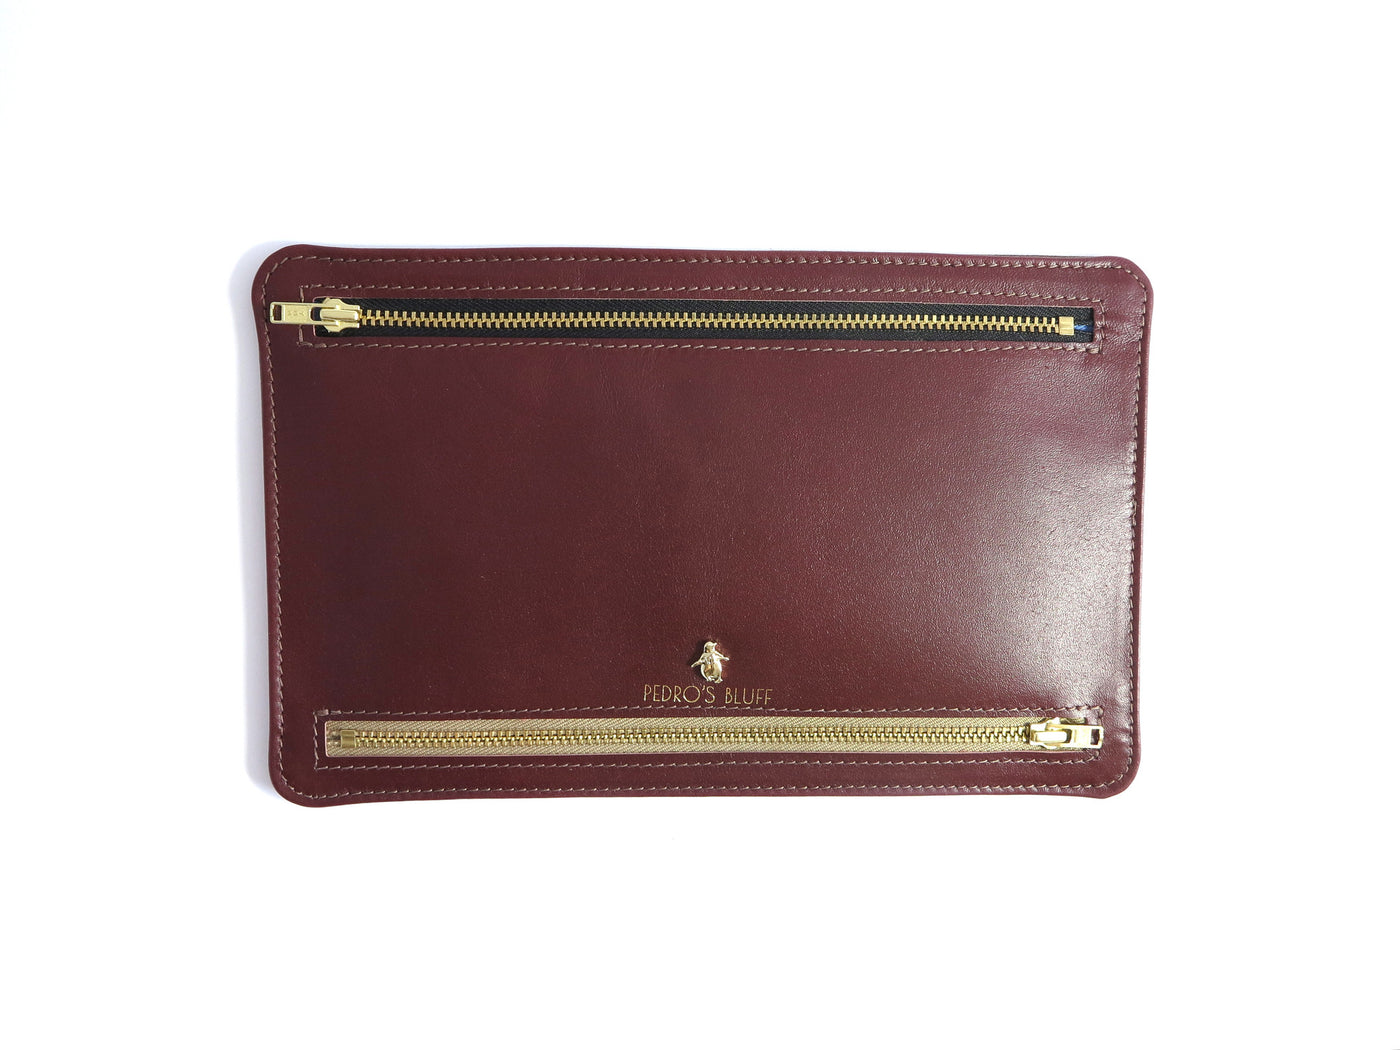 Globehopper Wallet - The Original - PEDRO'S BLUFF - New Zealand Leather Bags & Accessories